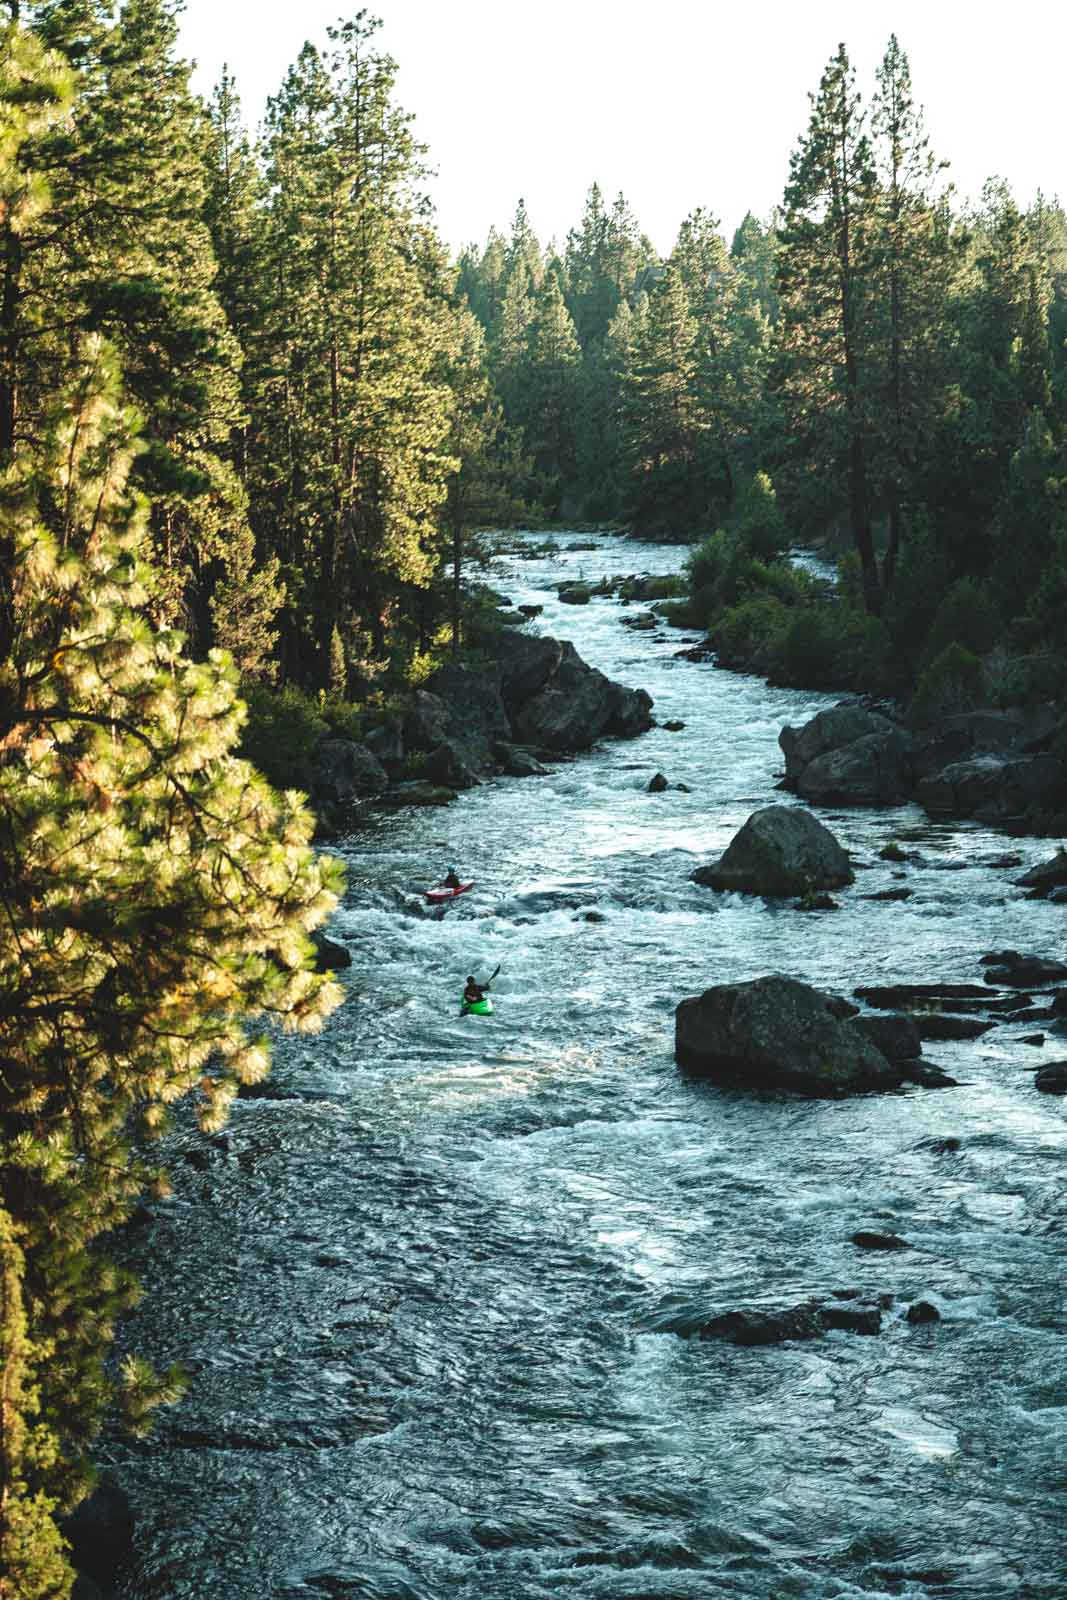 White water rafting on the Deschutes River — add this to your list if you're wondering what to do in Bend